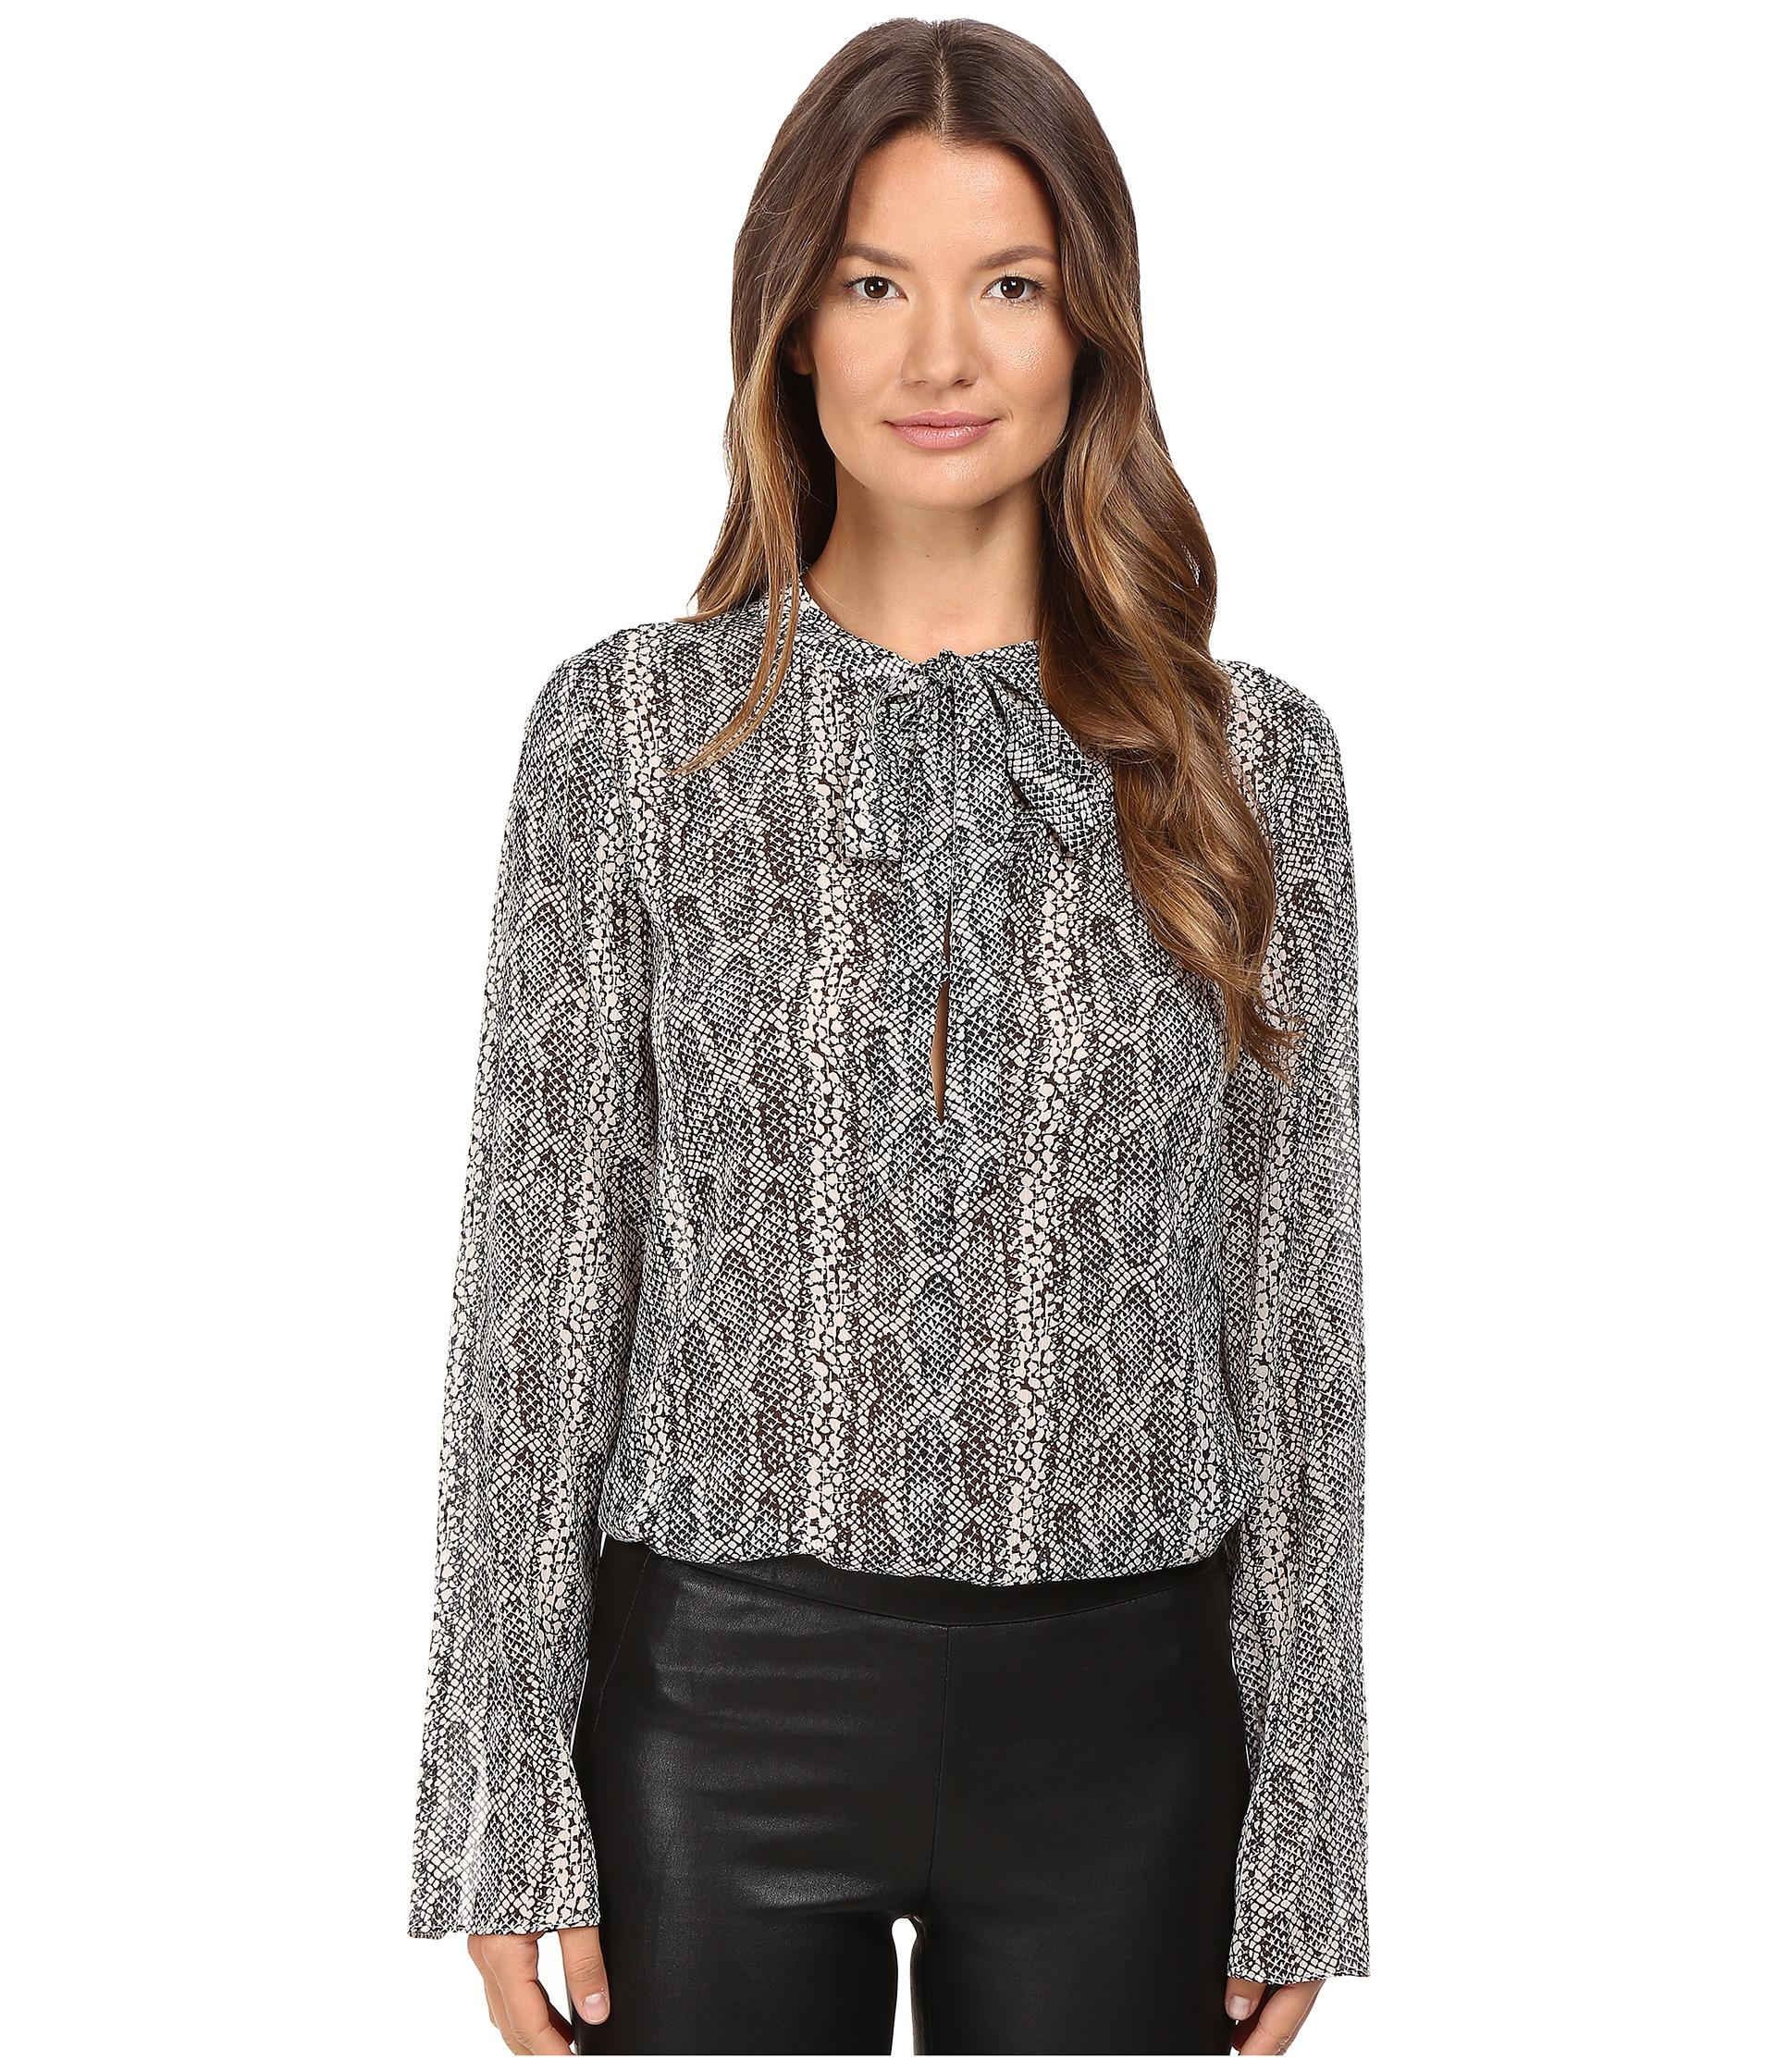 70d9f180a17eb7 Lyst - Theory Kimry Snake Print Top in Black